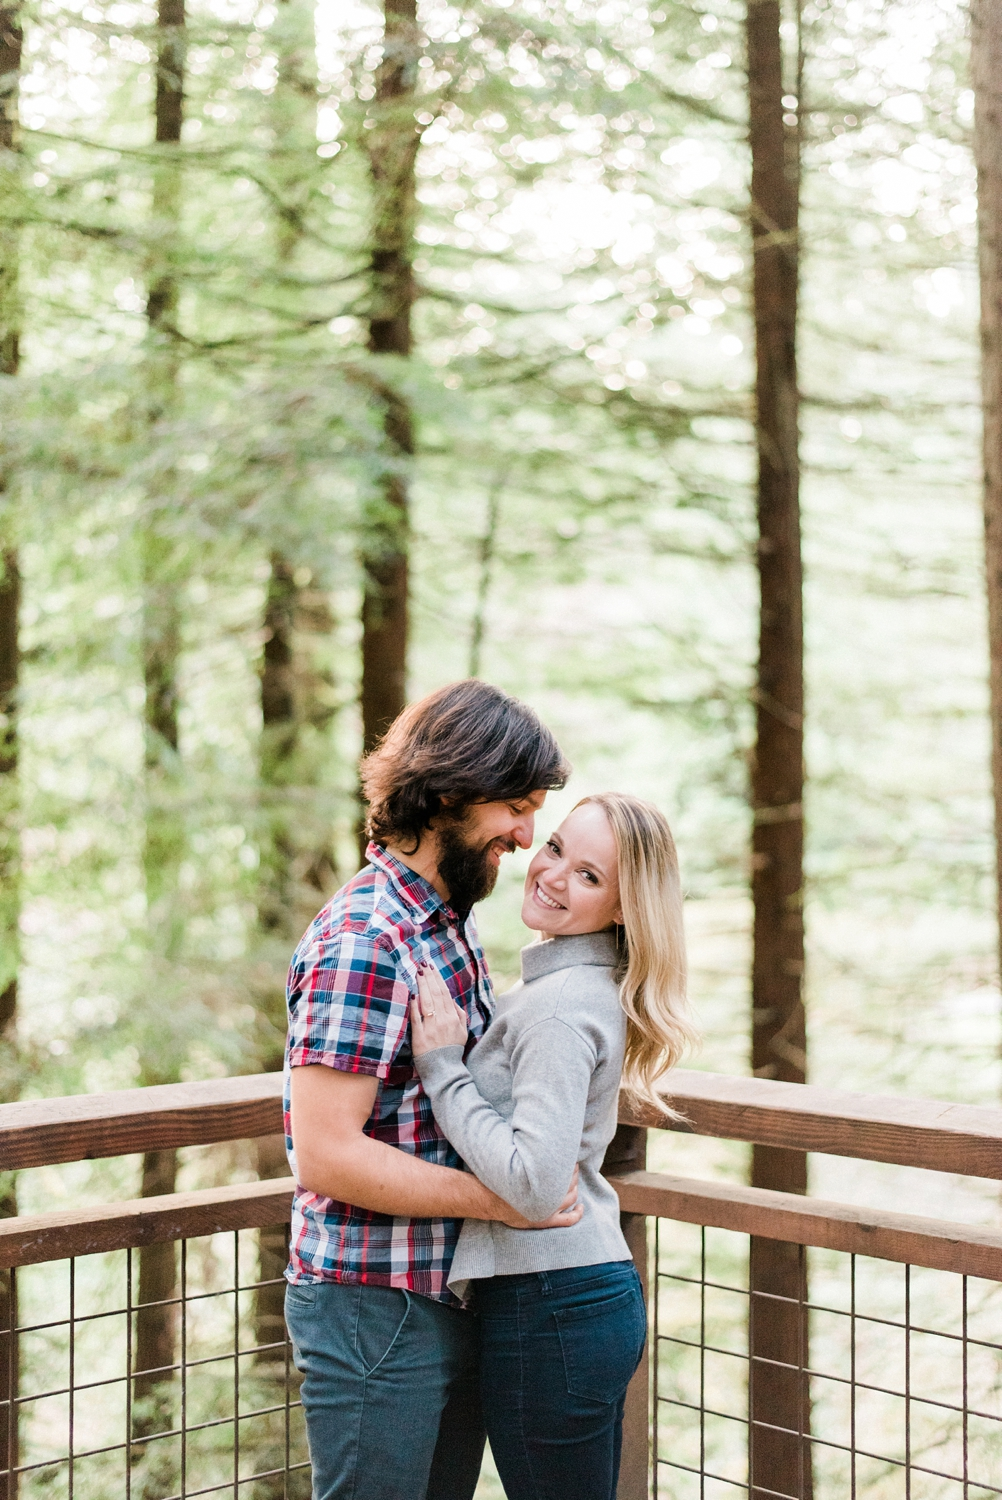 washington-park-portland-engagement-photos-hoyt-arboretum-shelley-marie-photo-179_cr.jpg